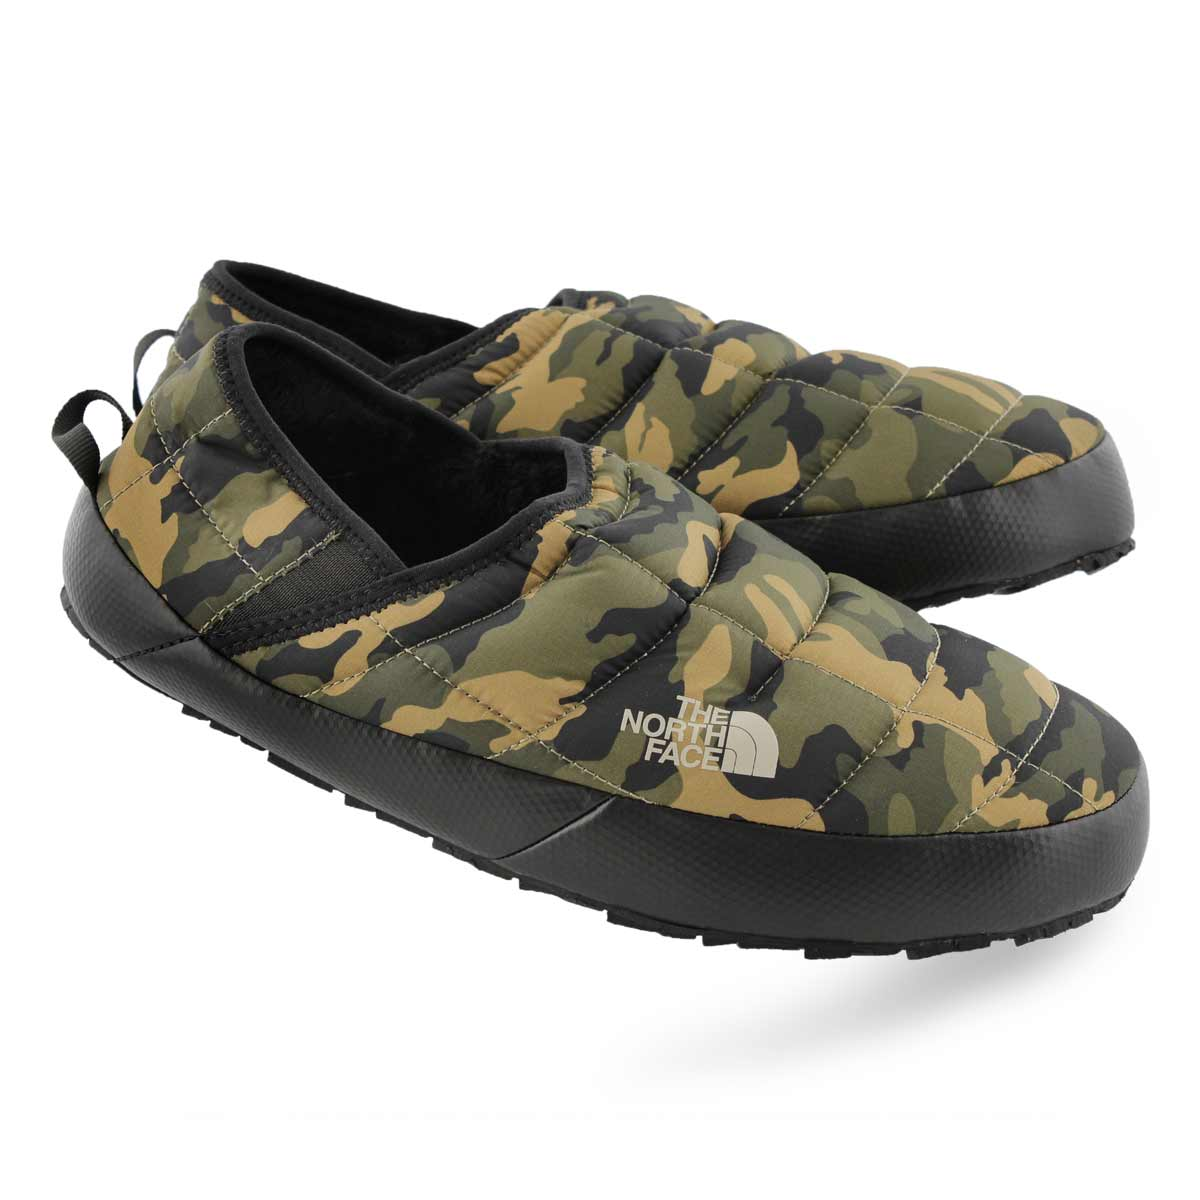 Mns ThermoBallTractionMuleV camo slpr